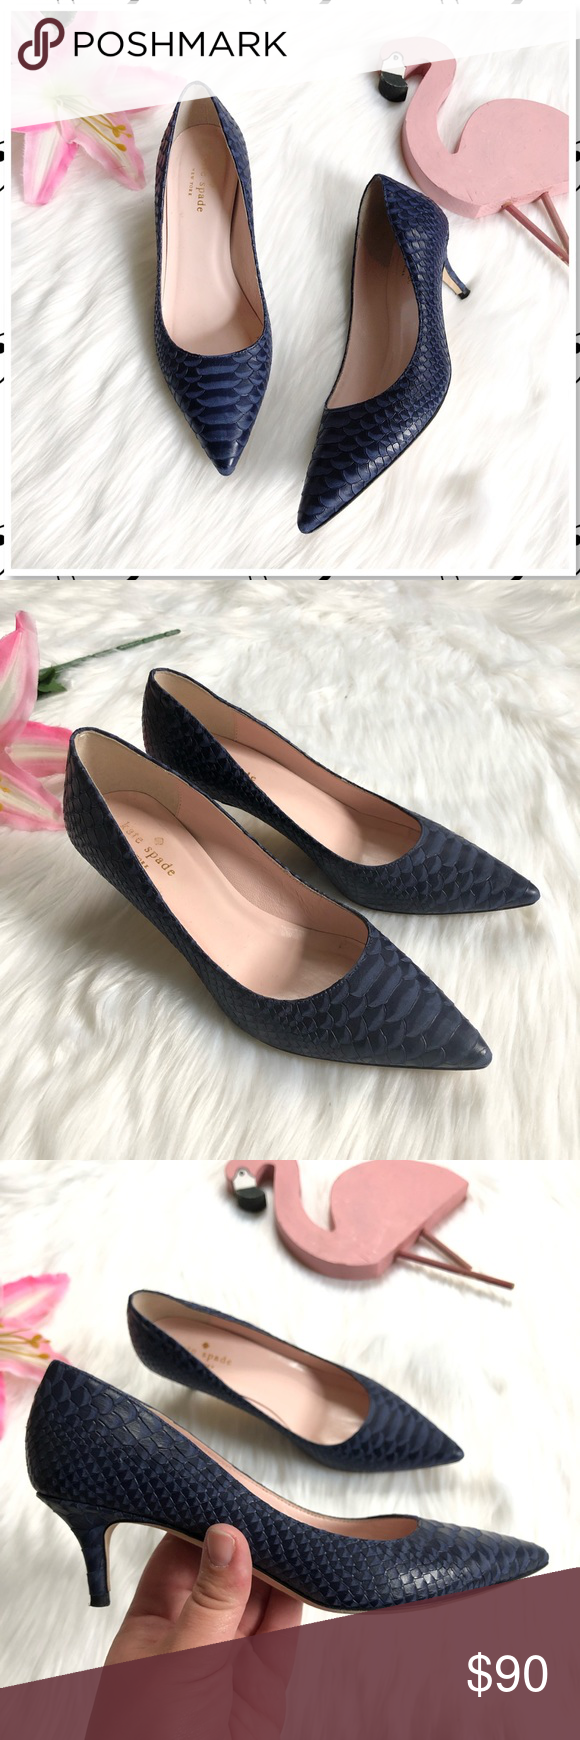 Kate Spade Melanie Kitten Heel Pumps Navy Kitten Heel Pumps Pumps Heels Heels